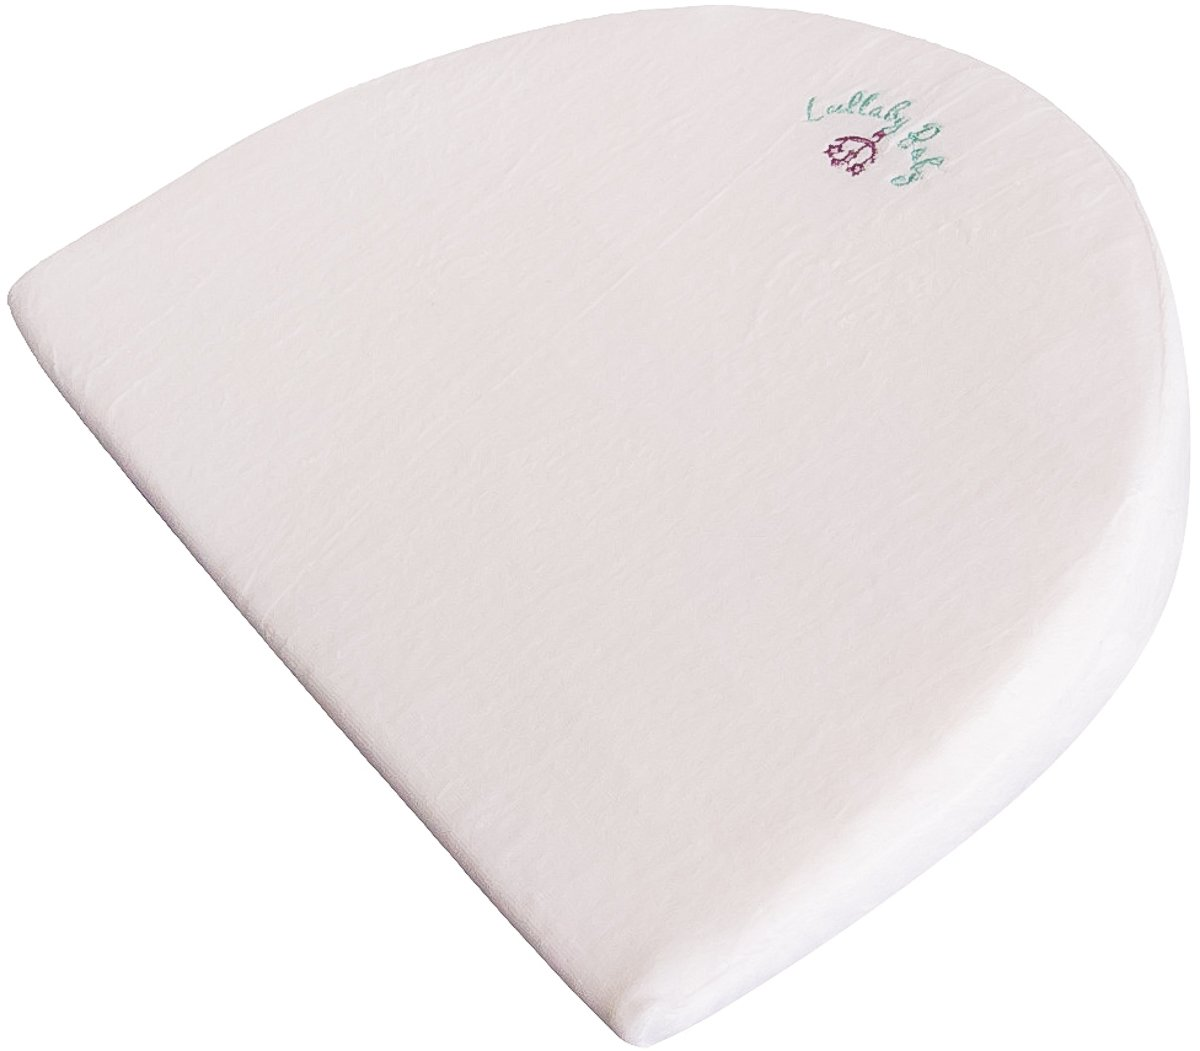 Lullaby Baby CPSC Lab Approved Large Wedge Pillow Infant Newborn Waterproof Large Size Memory Foam Foldable 12 Degree Incline Sleeper Acid Reflux For Bassinet by Lullaby Baby